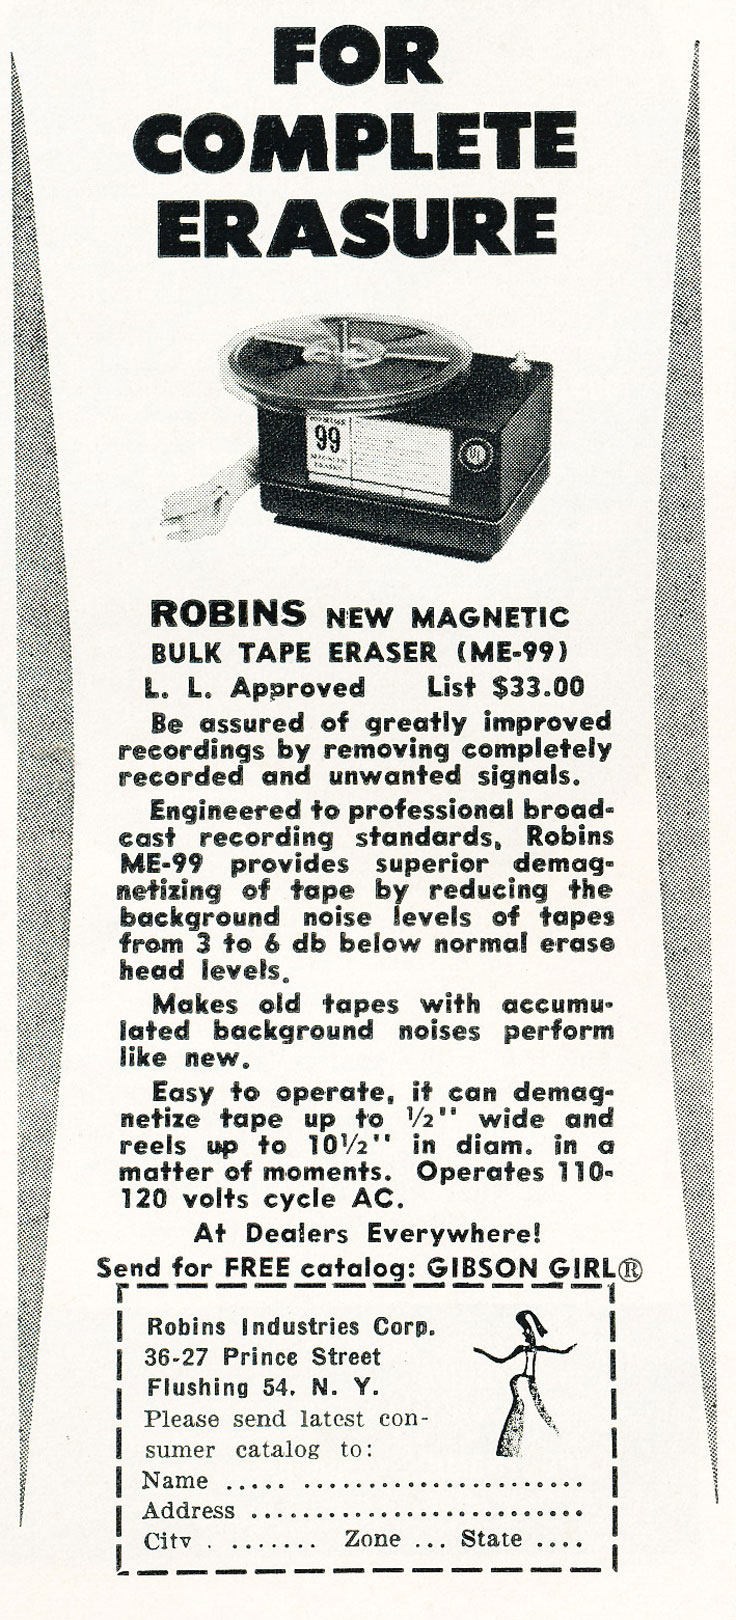 1961 ad for Robins tape recording accessories in Reel2ReelTexas.com's vintage recording collection